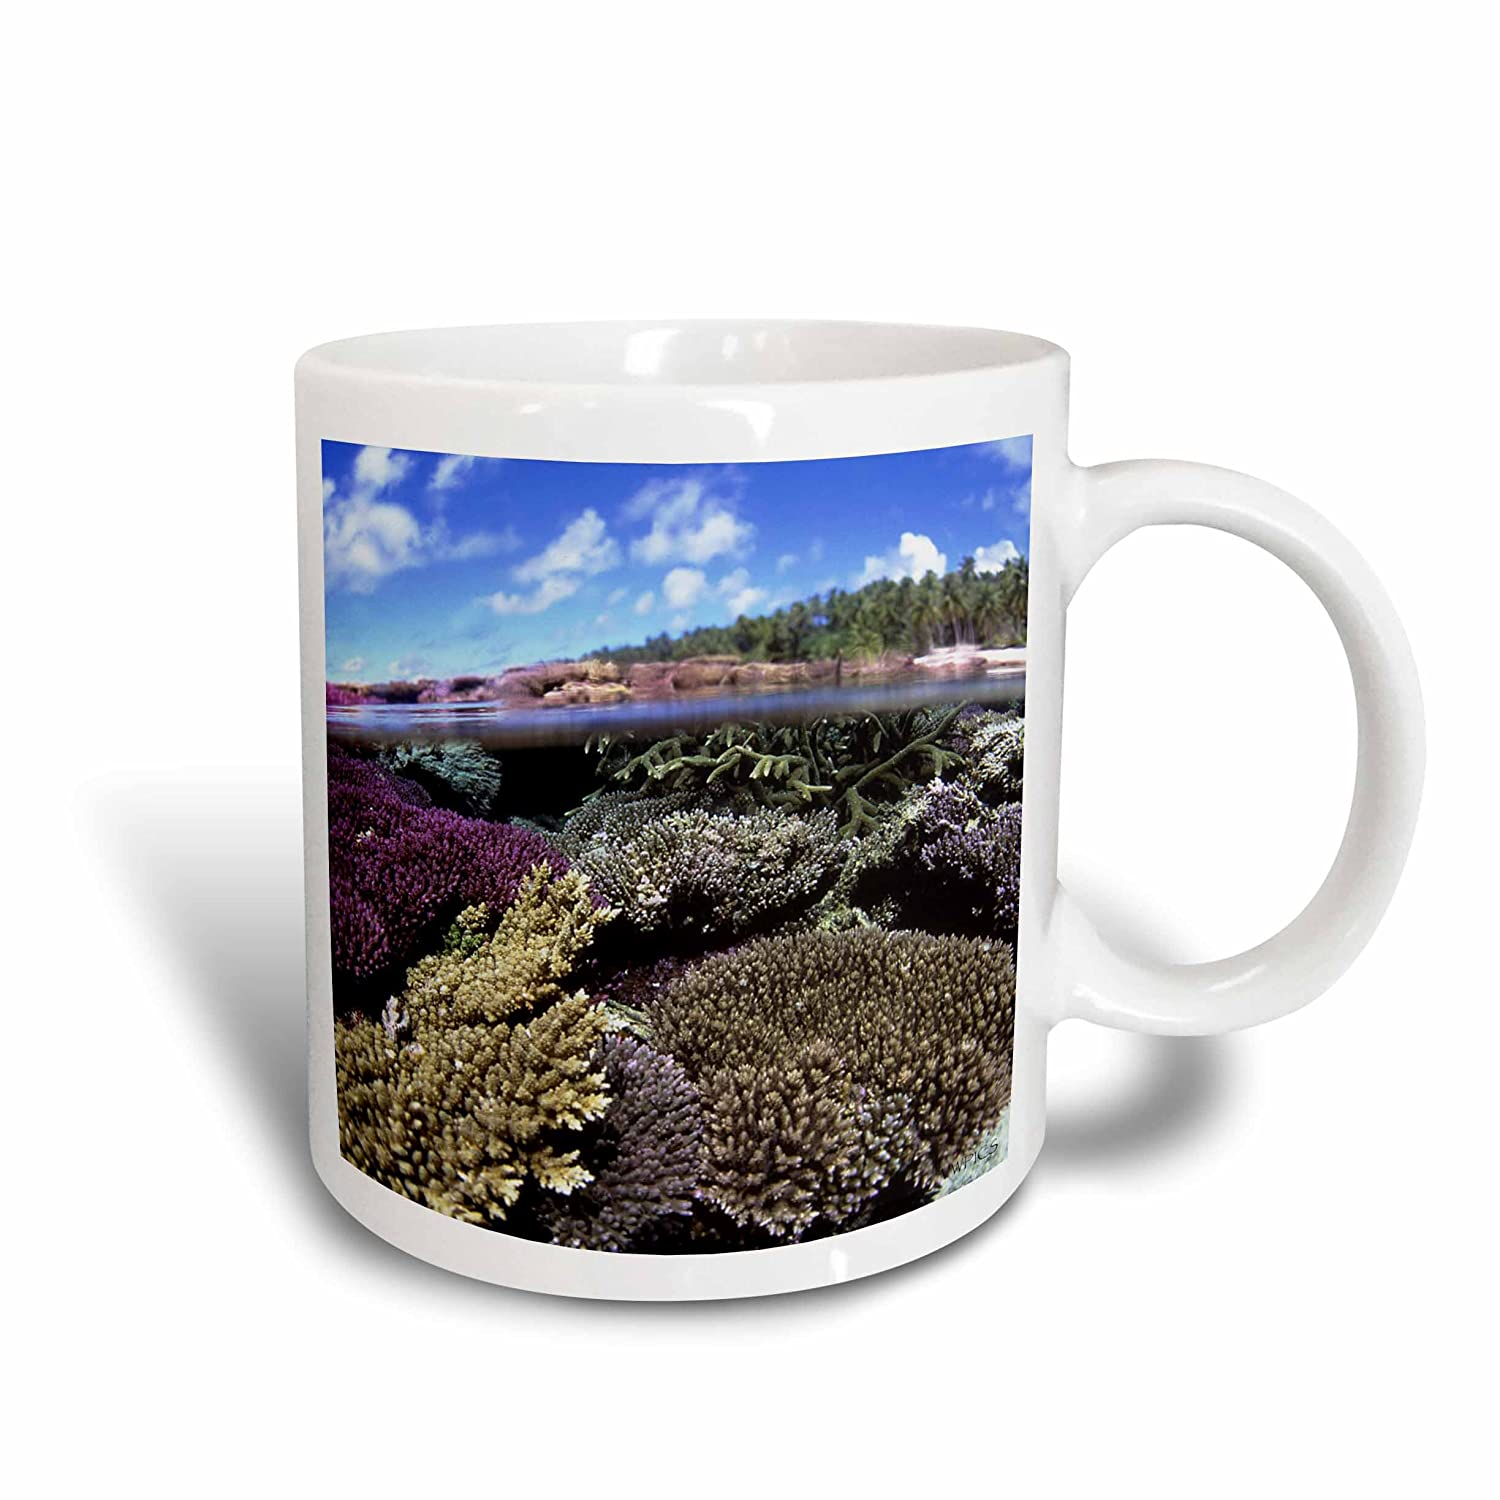 3dRose mug_46220_1'Split shot of corals and sky. Majuro Atoll, Marshall Islands' Ceramic Mug, 11 oz, Multicolor